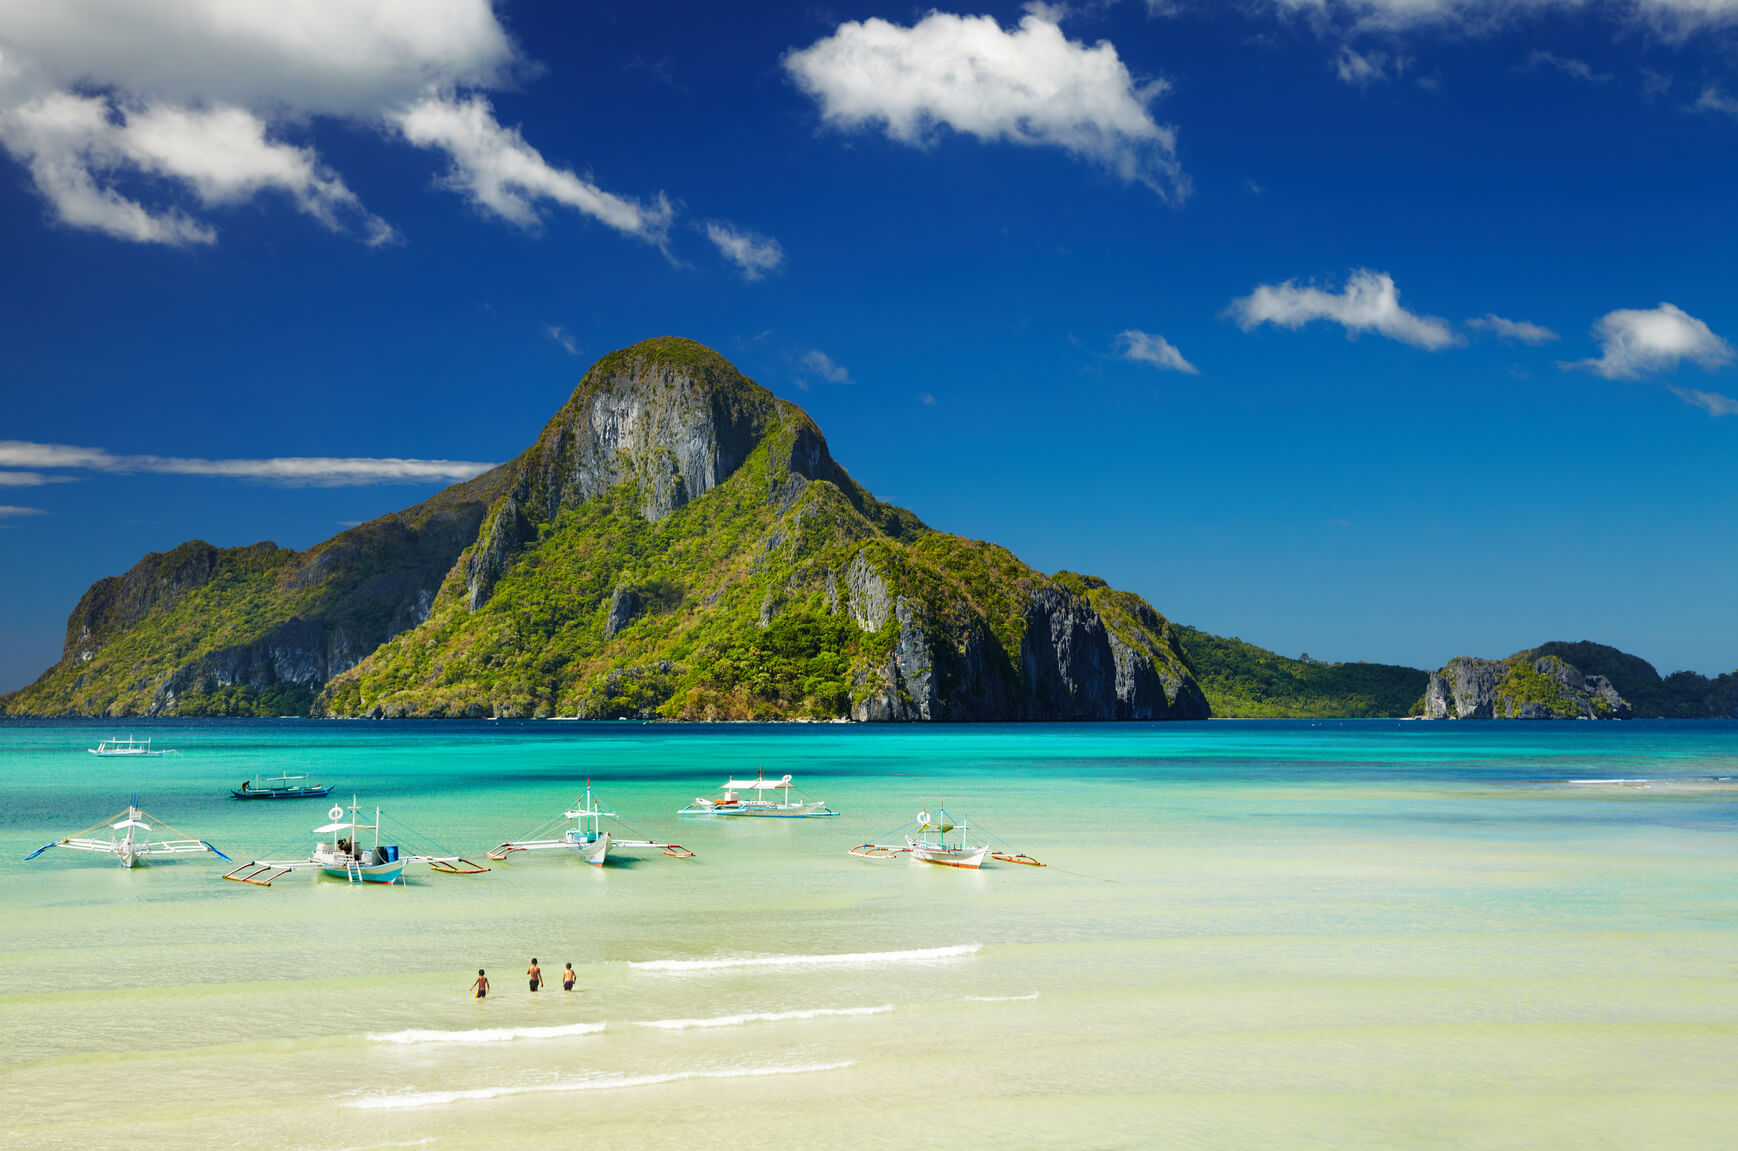 Beirut, Lebanon to Manila, Philippines for only $285 USD roundtrip